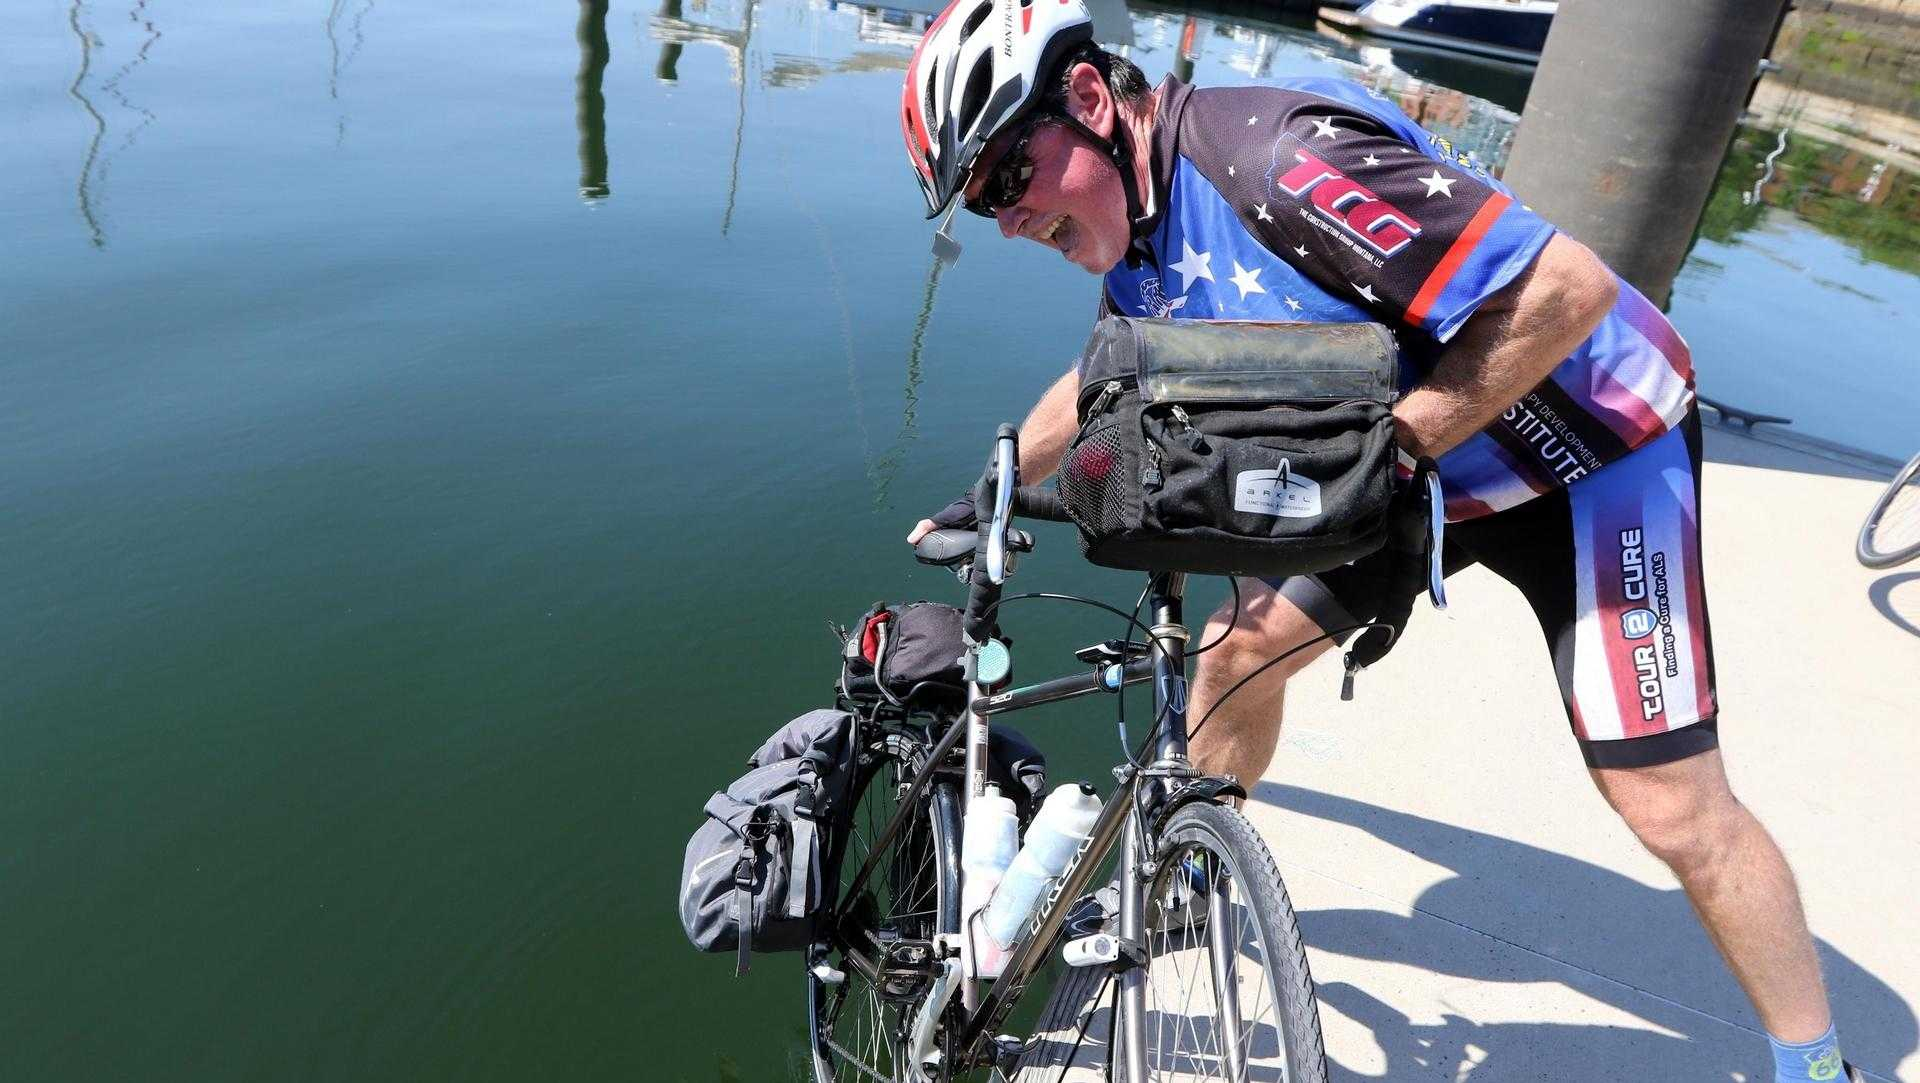 Wellesley girls basketball coach Glen Magpiong dips his bike wheel into the Atlantic Ocean in Charlestown before starting his cross-country bike trip on July 31.